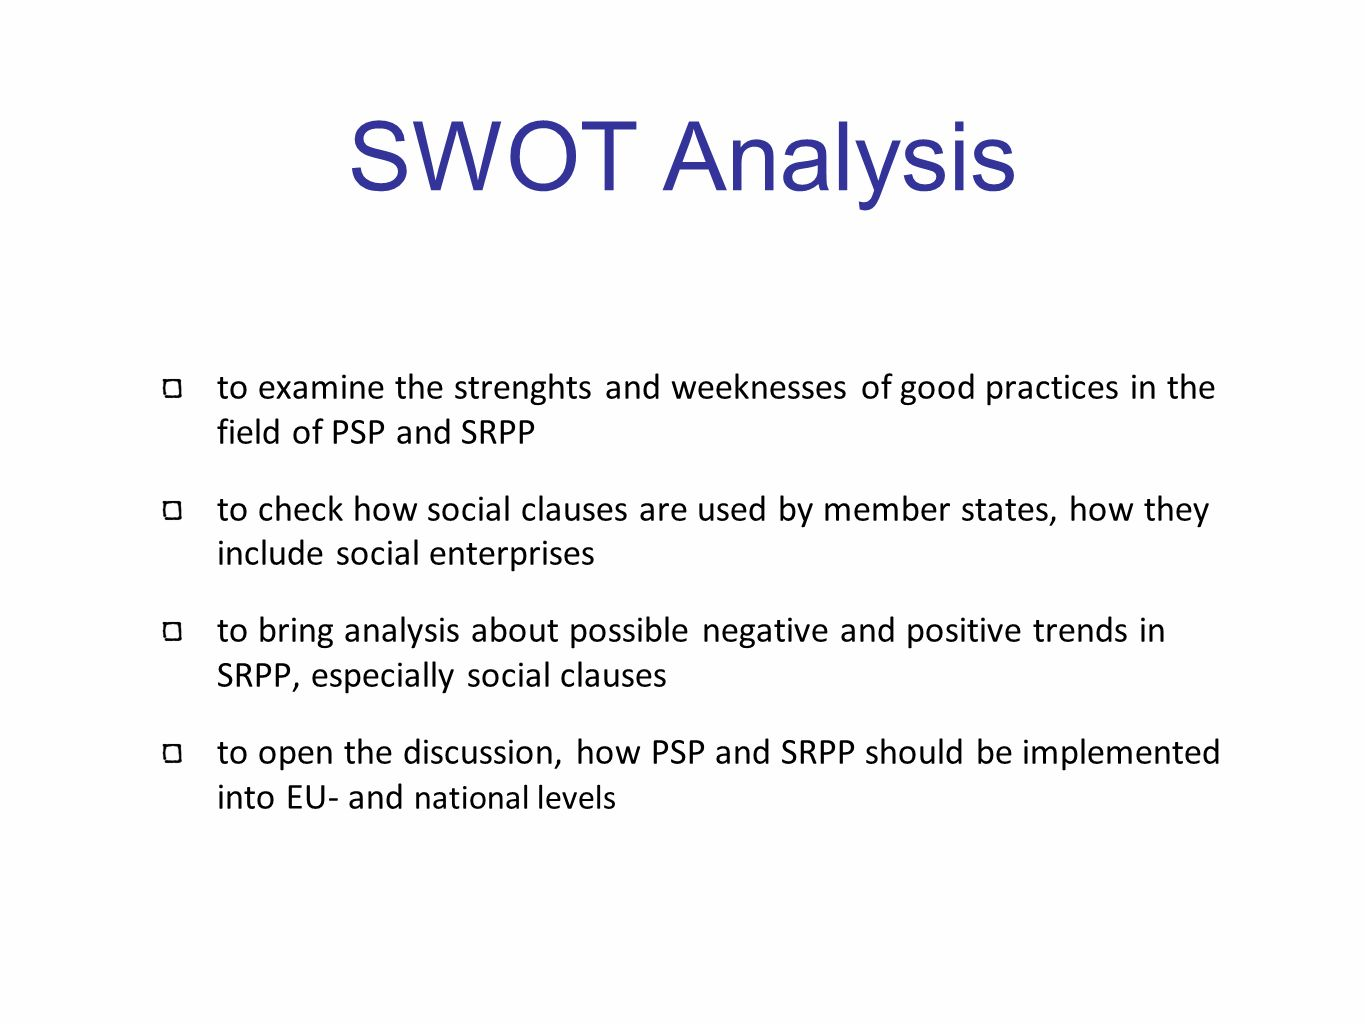 SWOT Analysis to examine the strenghts and weeknesses of good practices in the field of PSP and SRPP to check how social clauses are used by member states, how they include social enterprises to bring analysis about possible negative and positive trends in SRPP, especially social clauses to open the discussion, how PSP and SRPP should be implemented into EU- and national levels